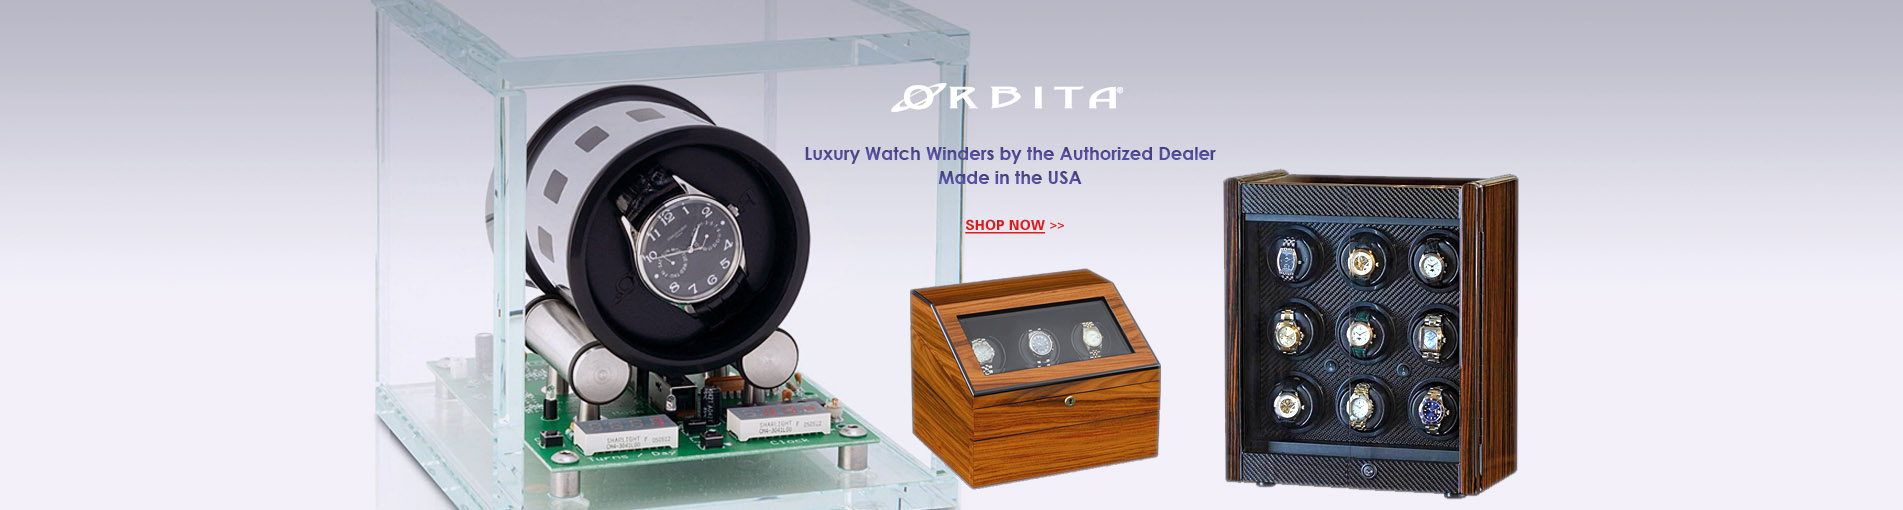 Orbita Watch Winders